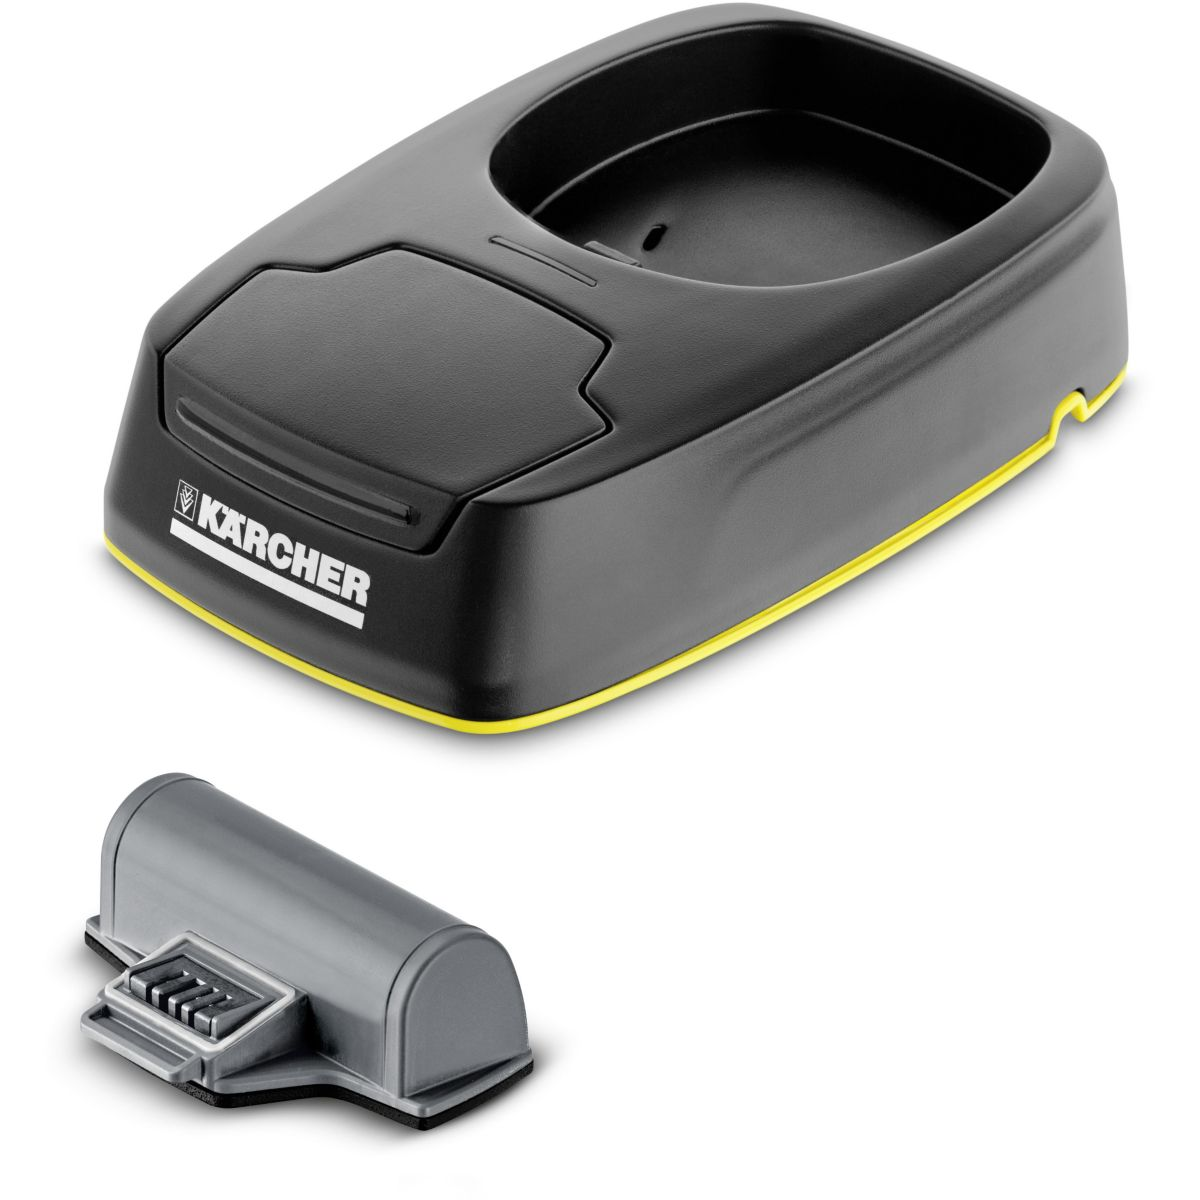 Batterie aspirateur KARCHER Station de recharge + batterie pou...